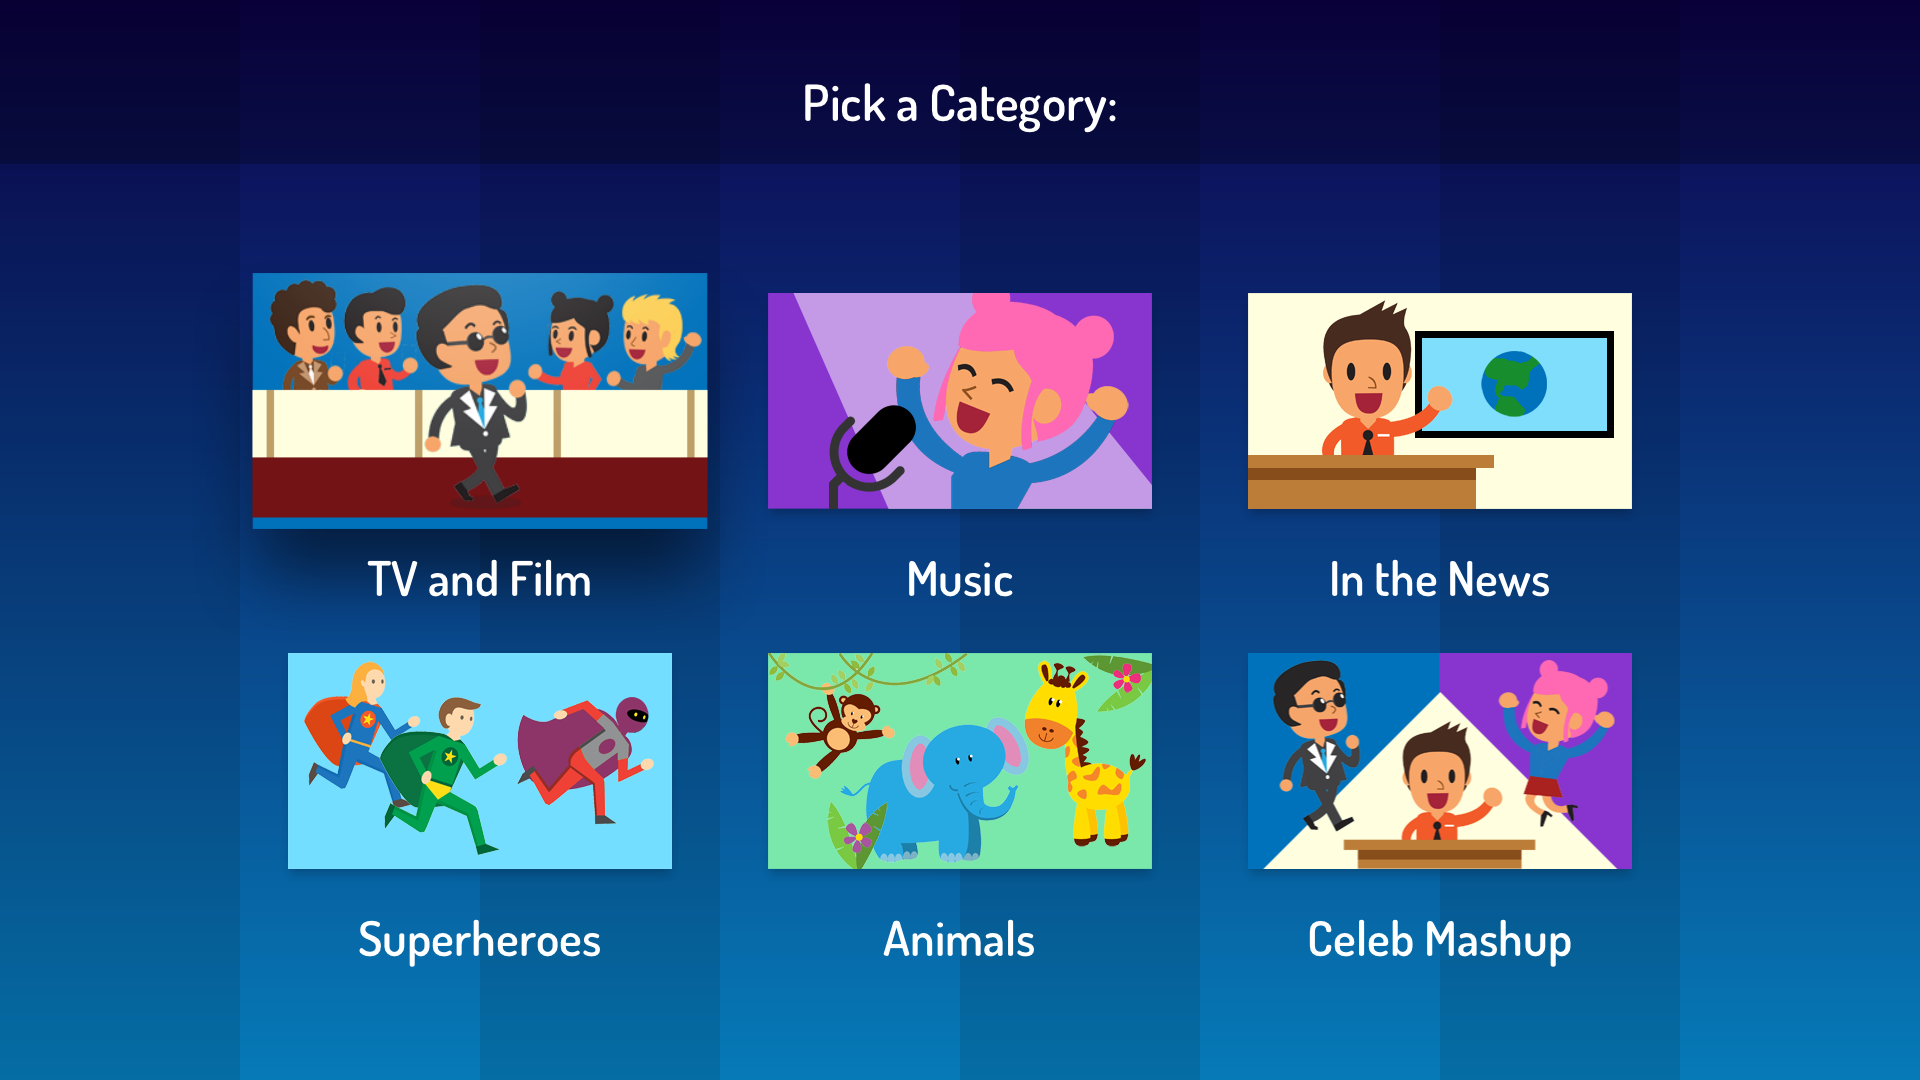 imperson8 - Family Party Game screenshot 13